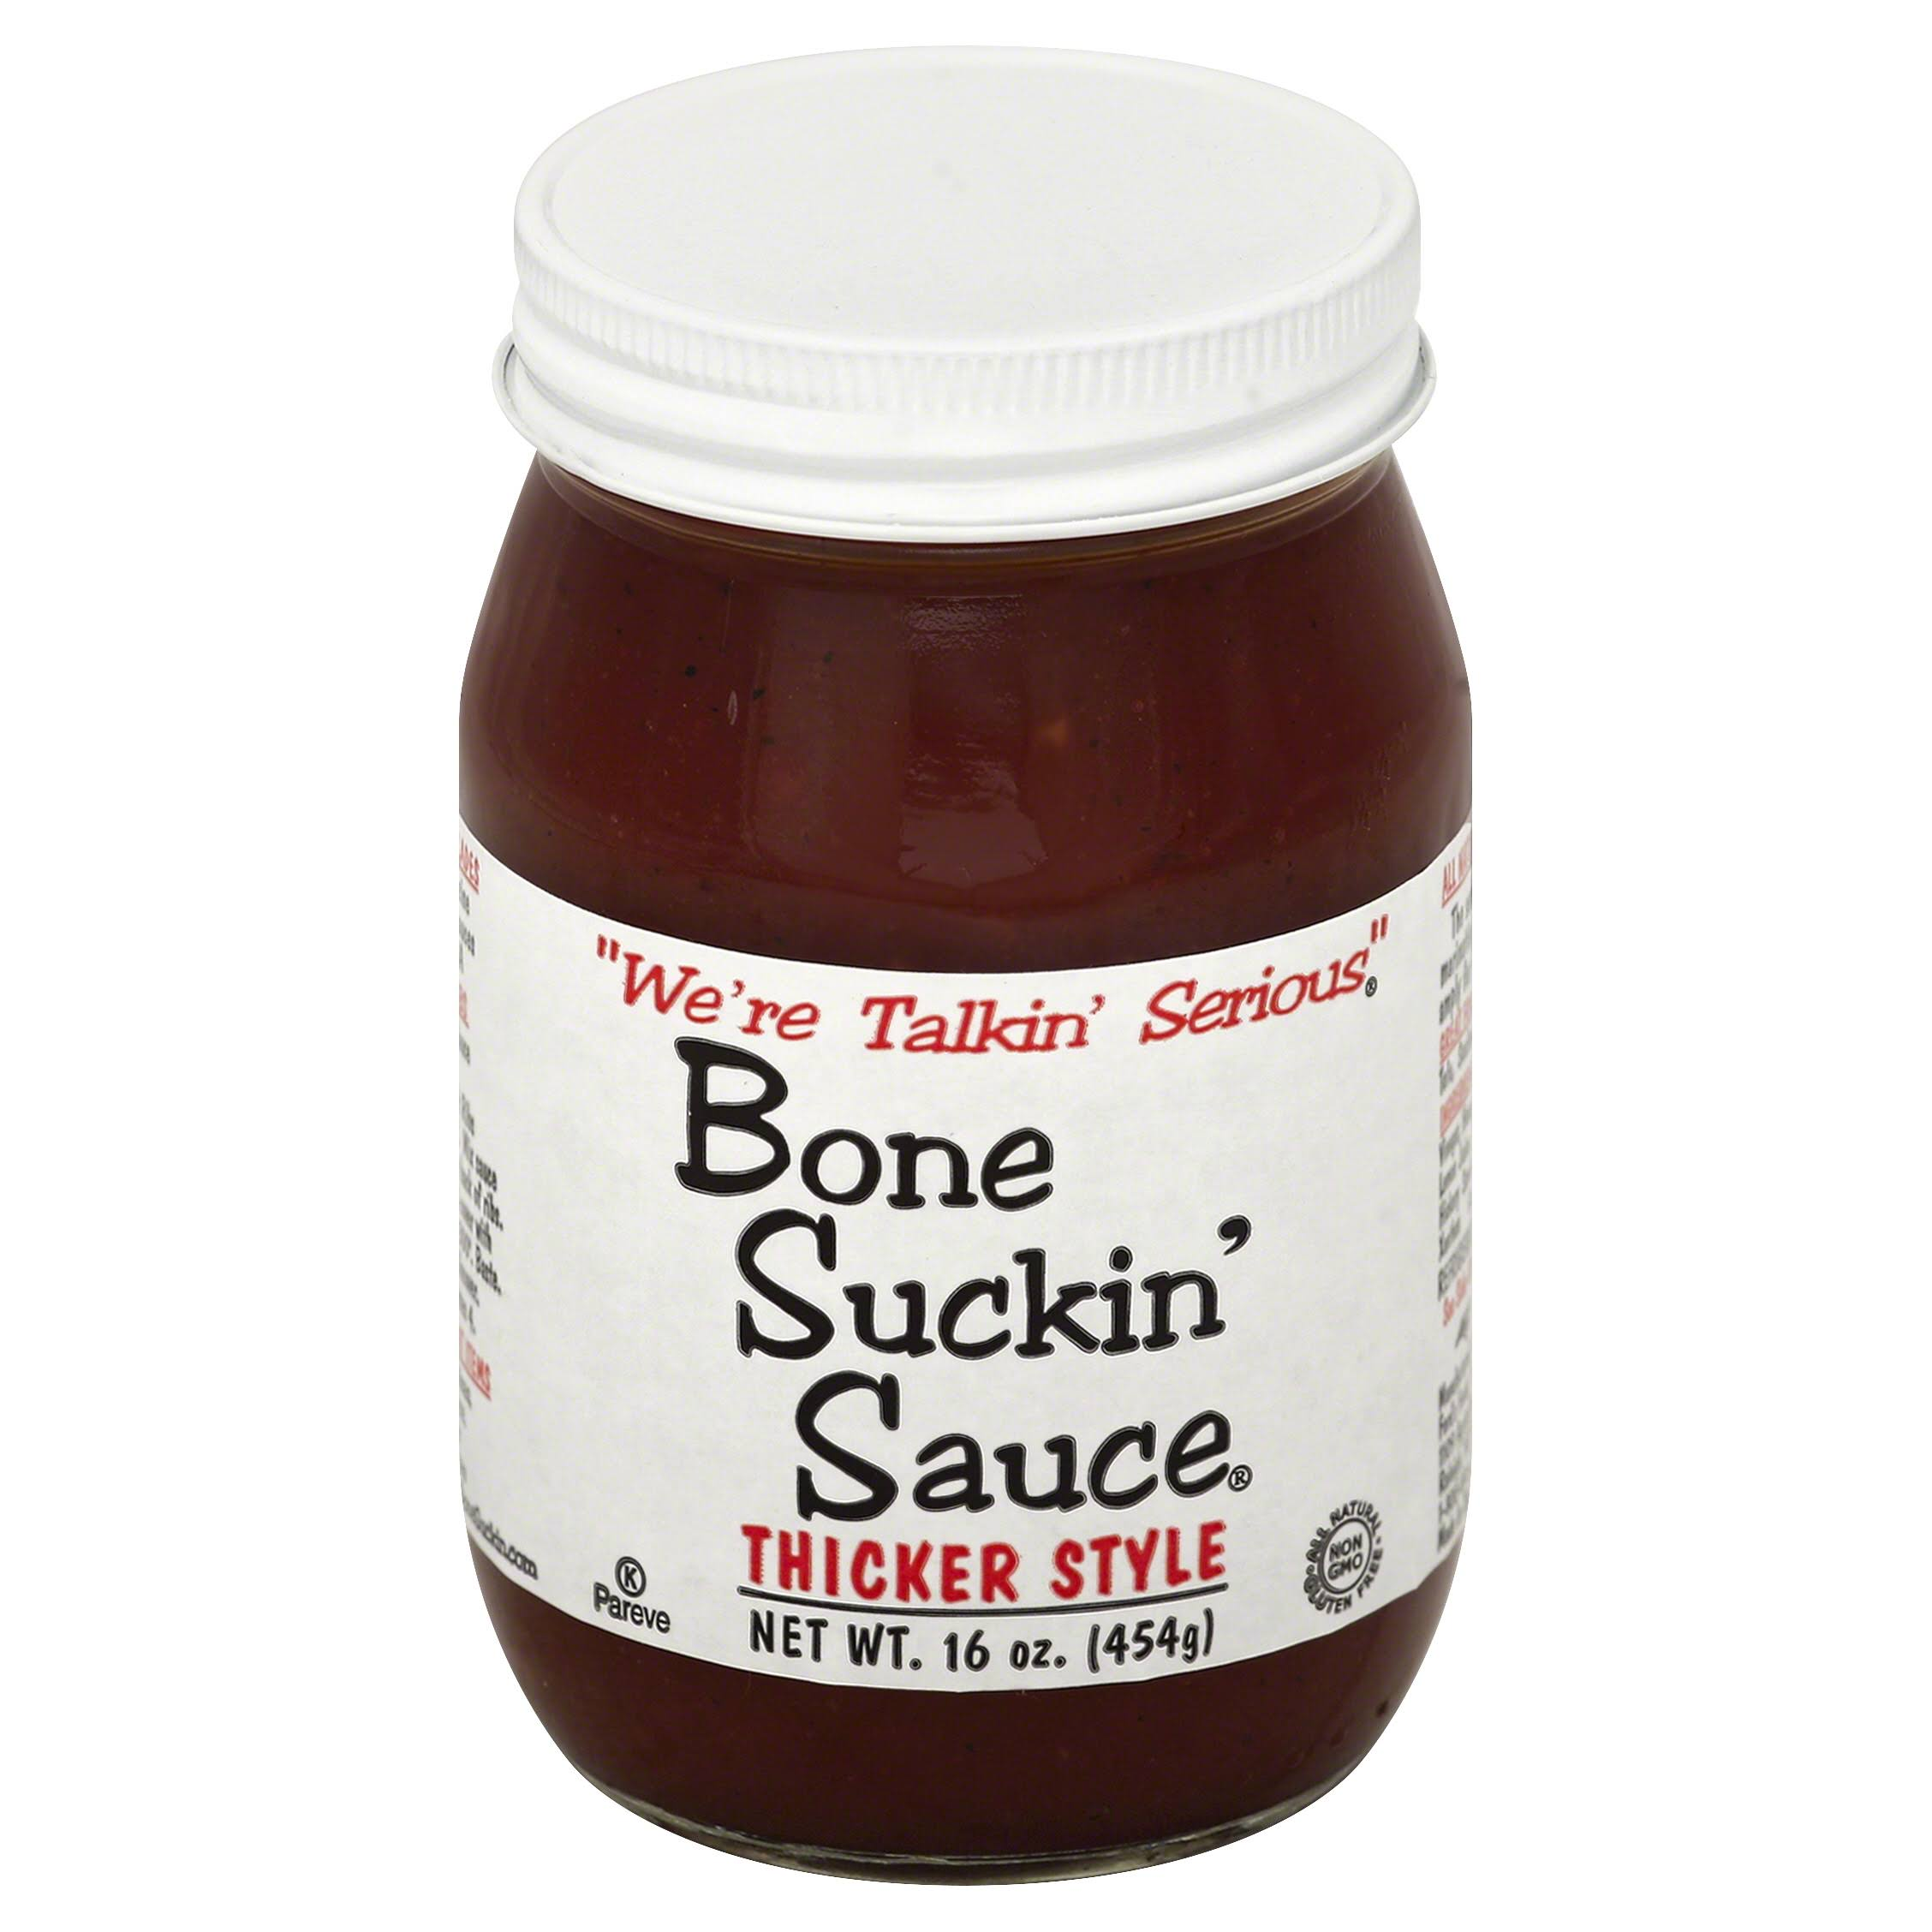 Bone Suckin' Sauce Thicker Style - Barbecue Sauce, 16oz